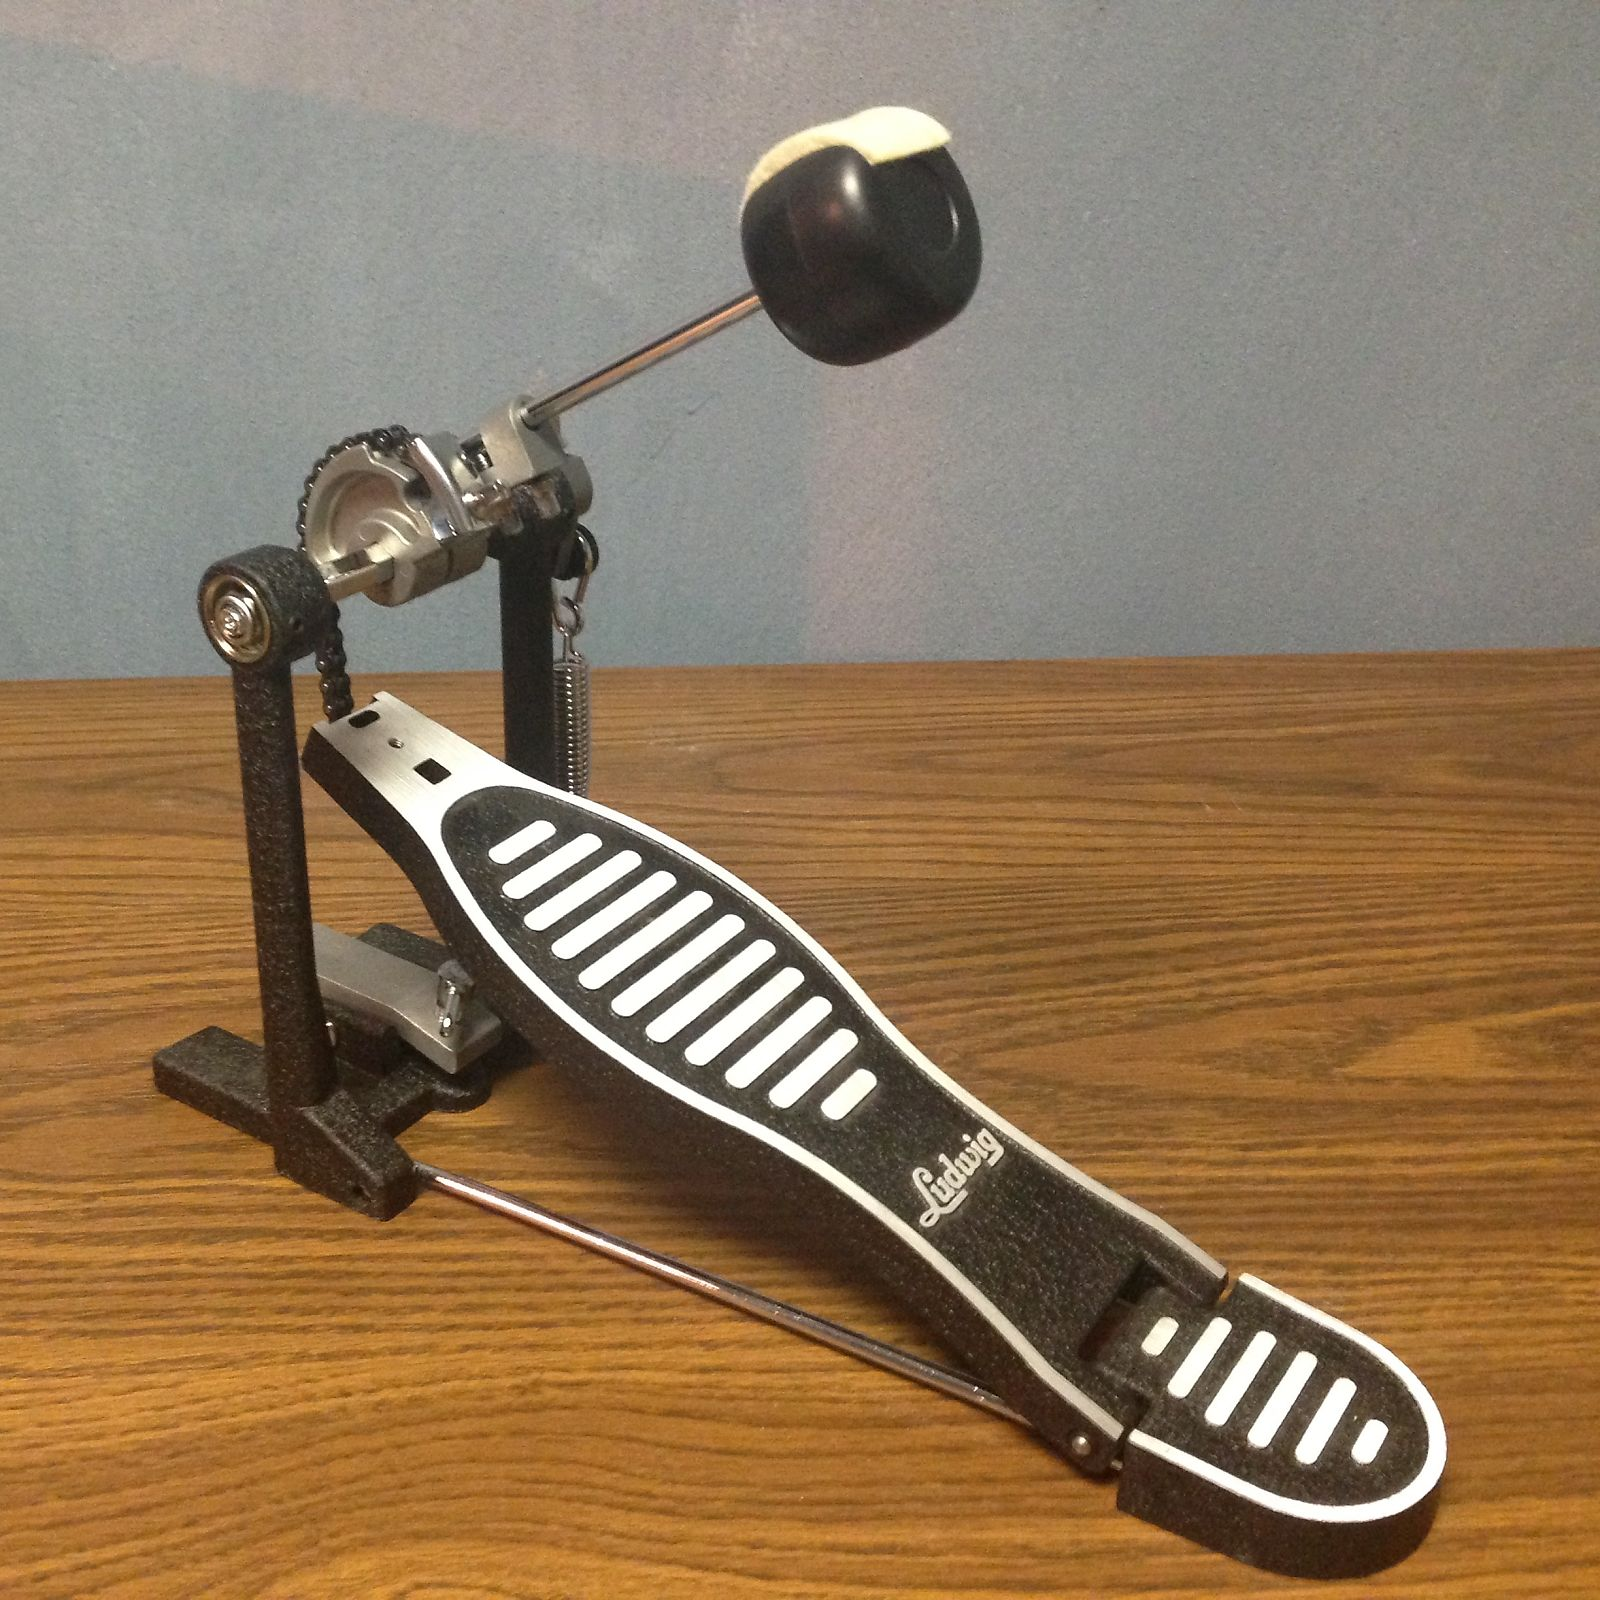 New Ludwig L415FPR Heavy Duty Single Bass Drum Pedal with Reversible Beater